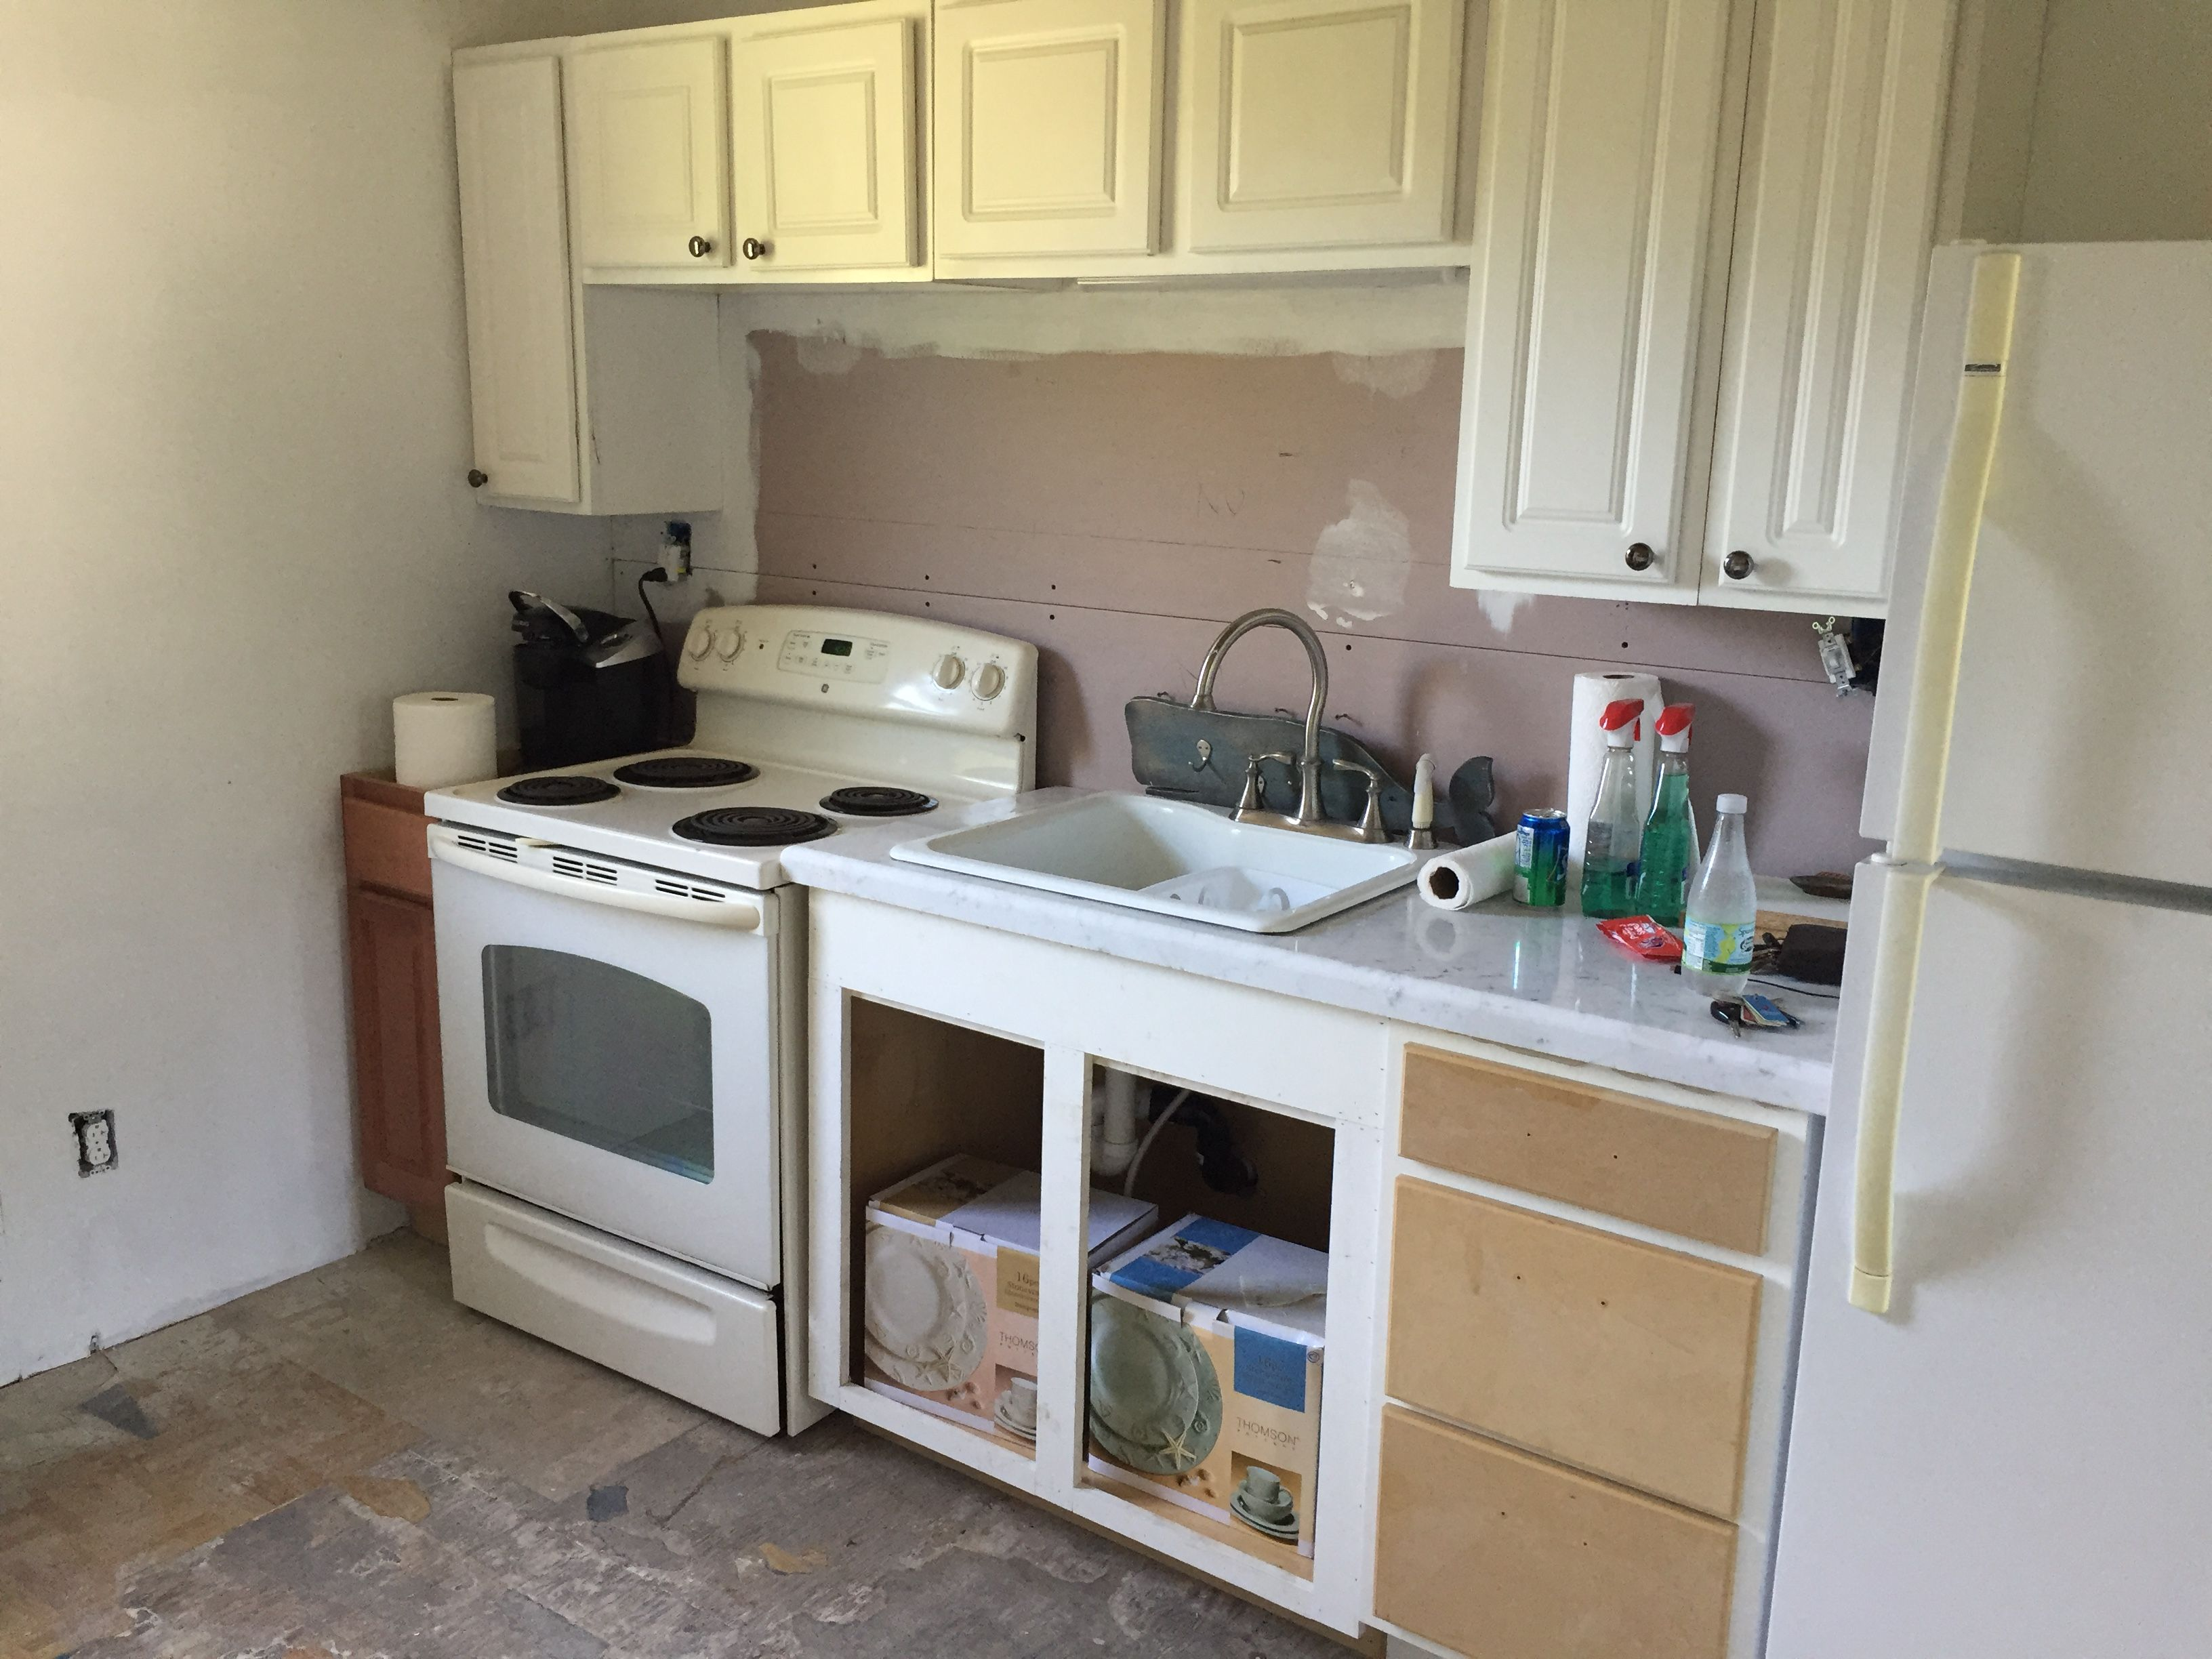 Kitchen Cabinets Craigslist Stove Habitat And Marble Countertop - Free kitchen cabinets craigslist